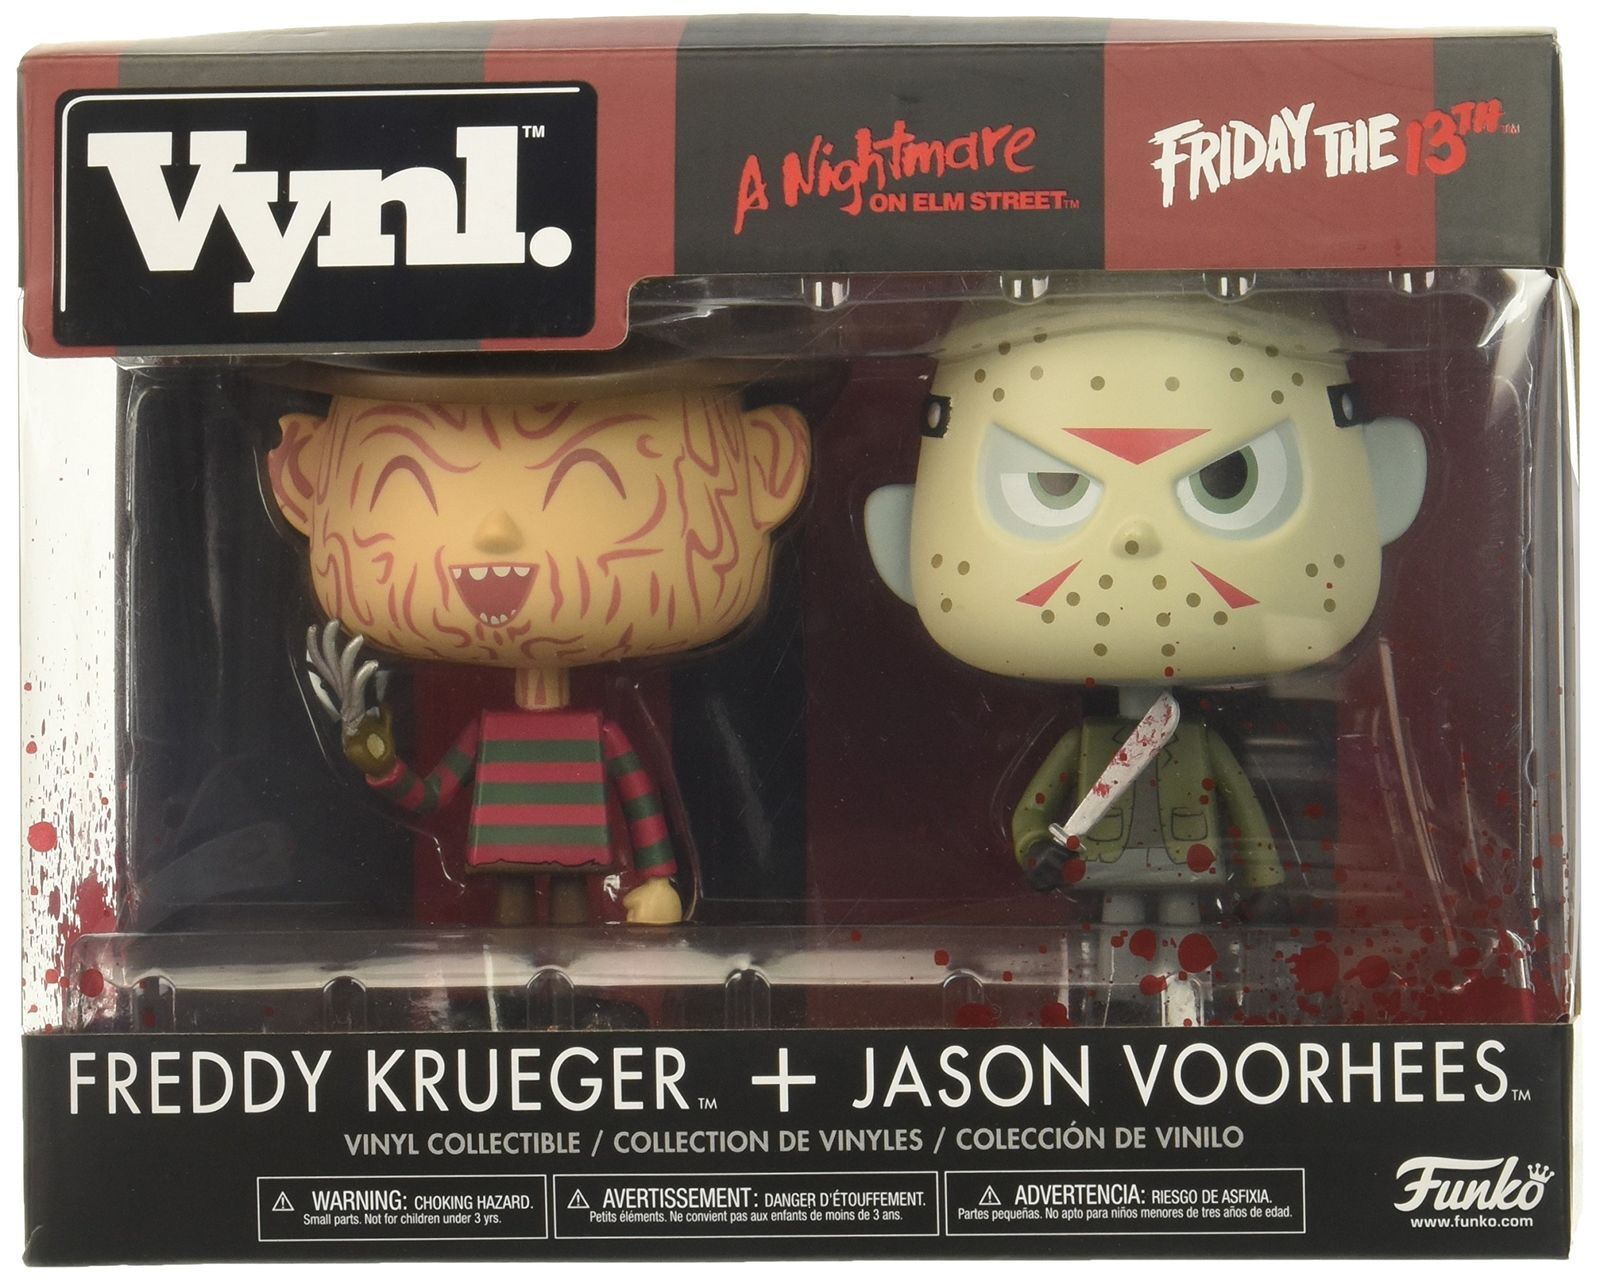 Funko Nightmare Frotdy Krueger and Friday The 13th Jason Voorhees Vinyl Figures